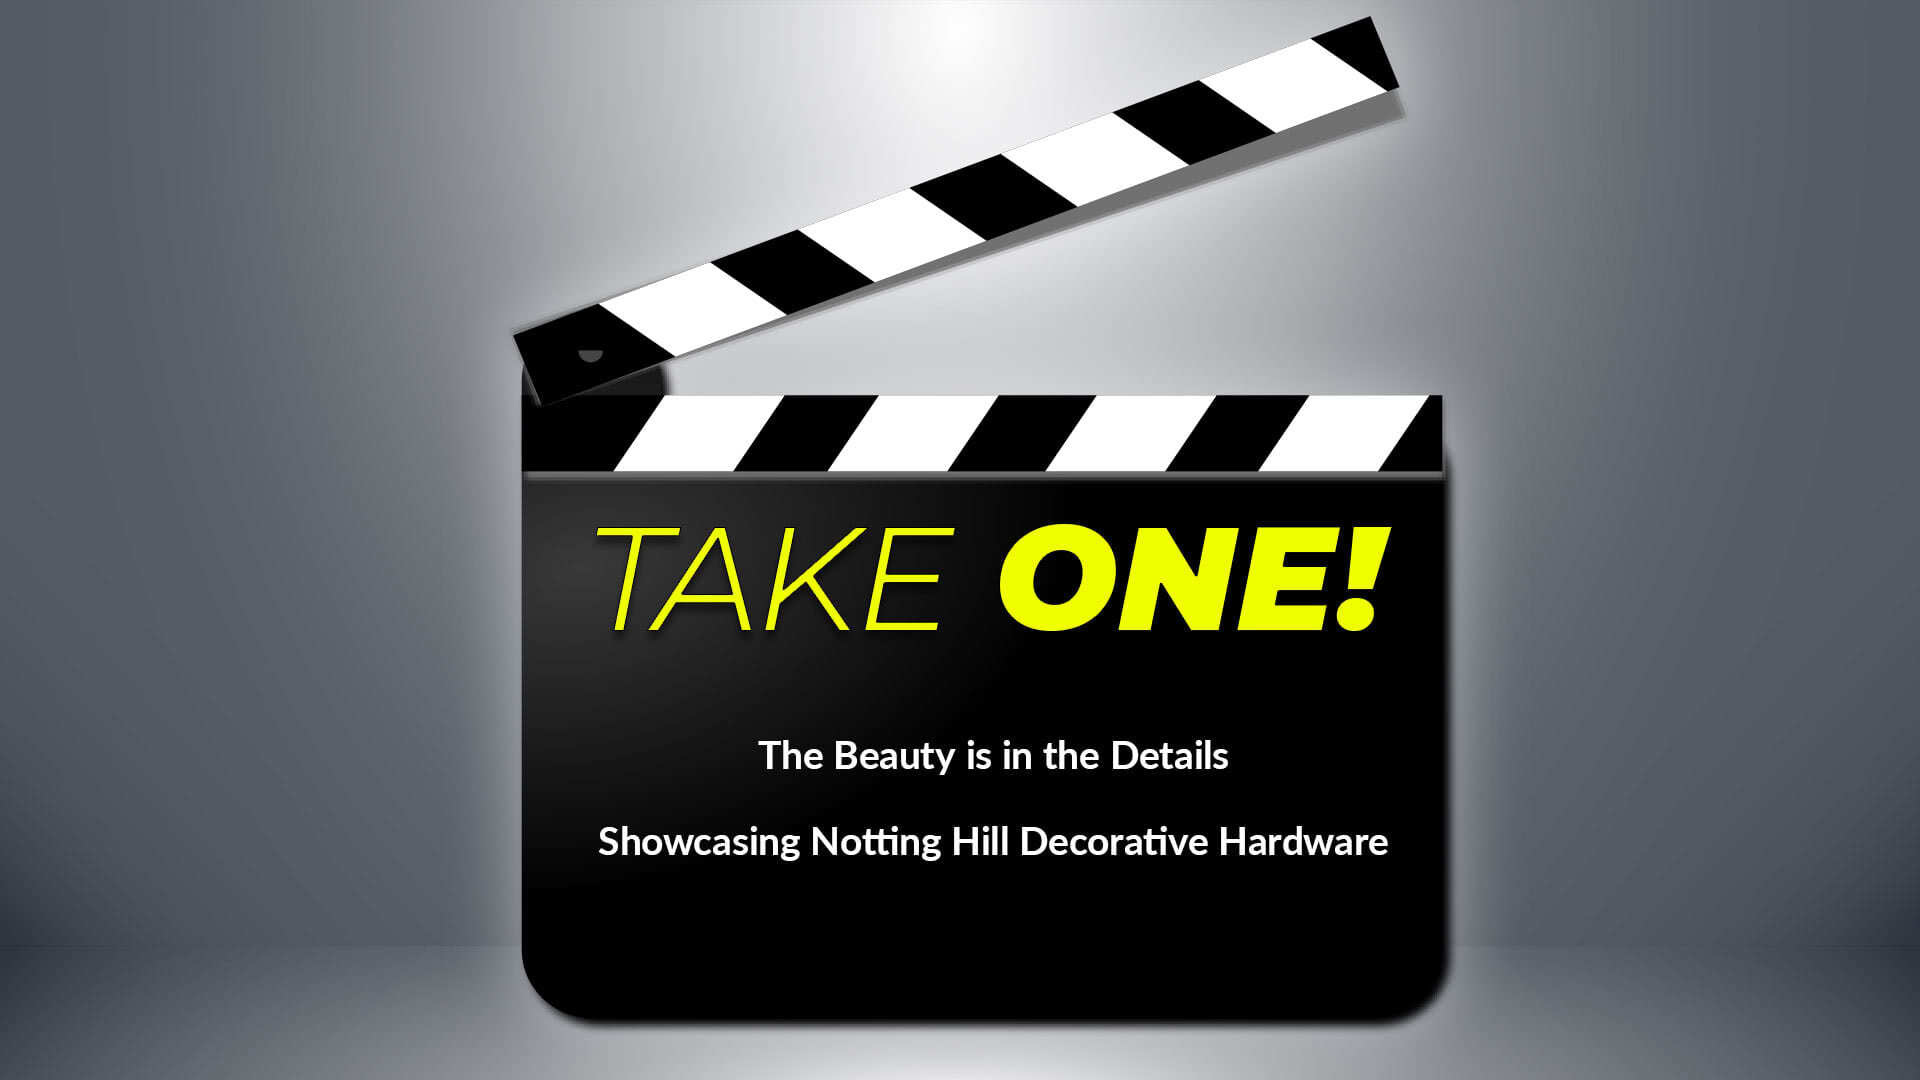 TAKE ONE: Notting Hill Decorative Hardware